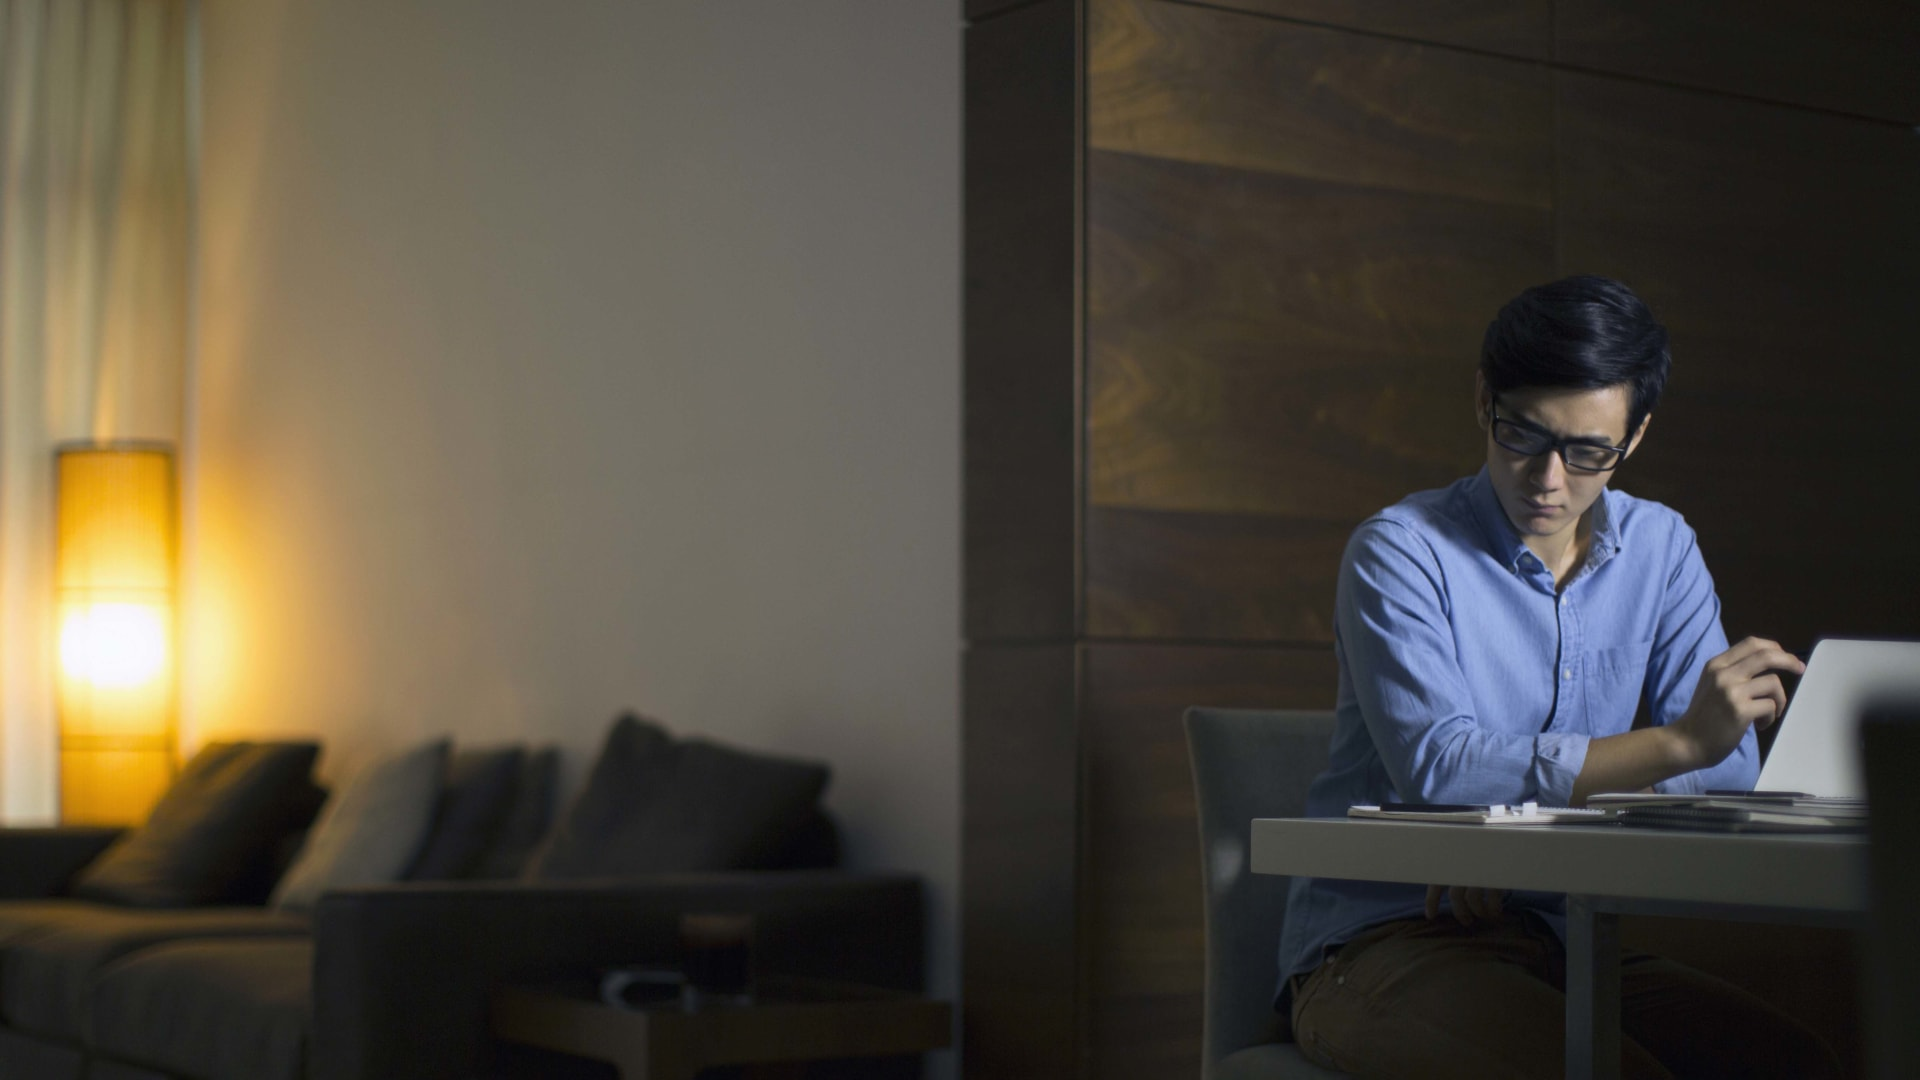 The 7 Worst Aspects of Working at Home and What to Do About Them